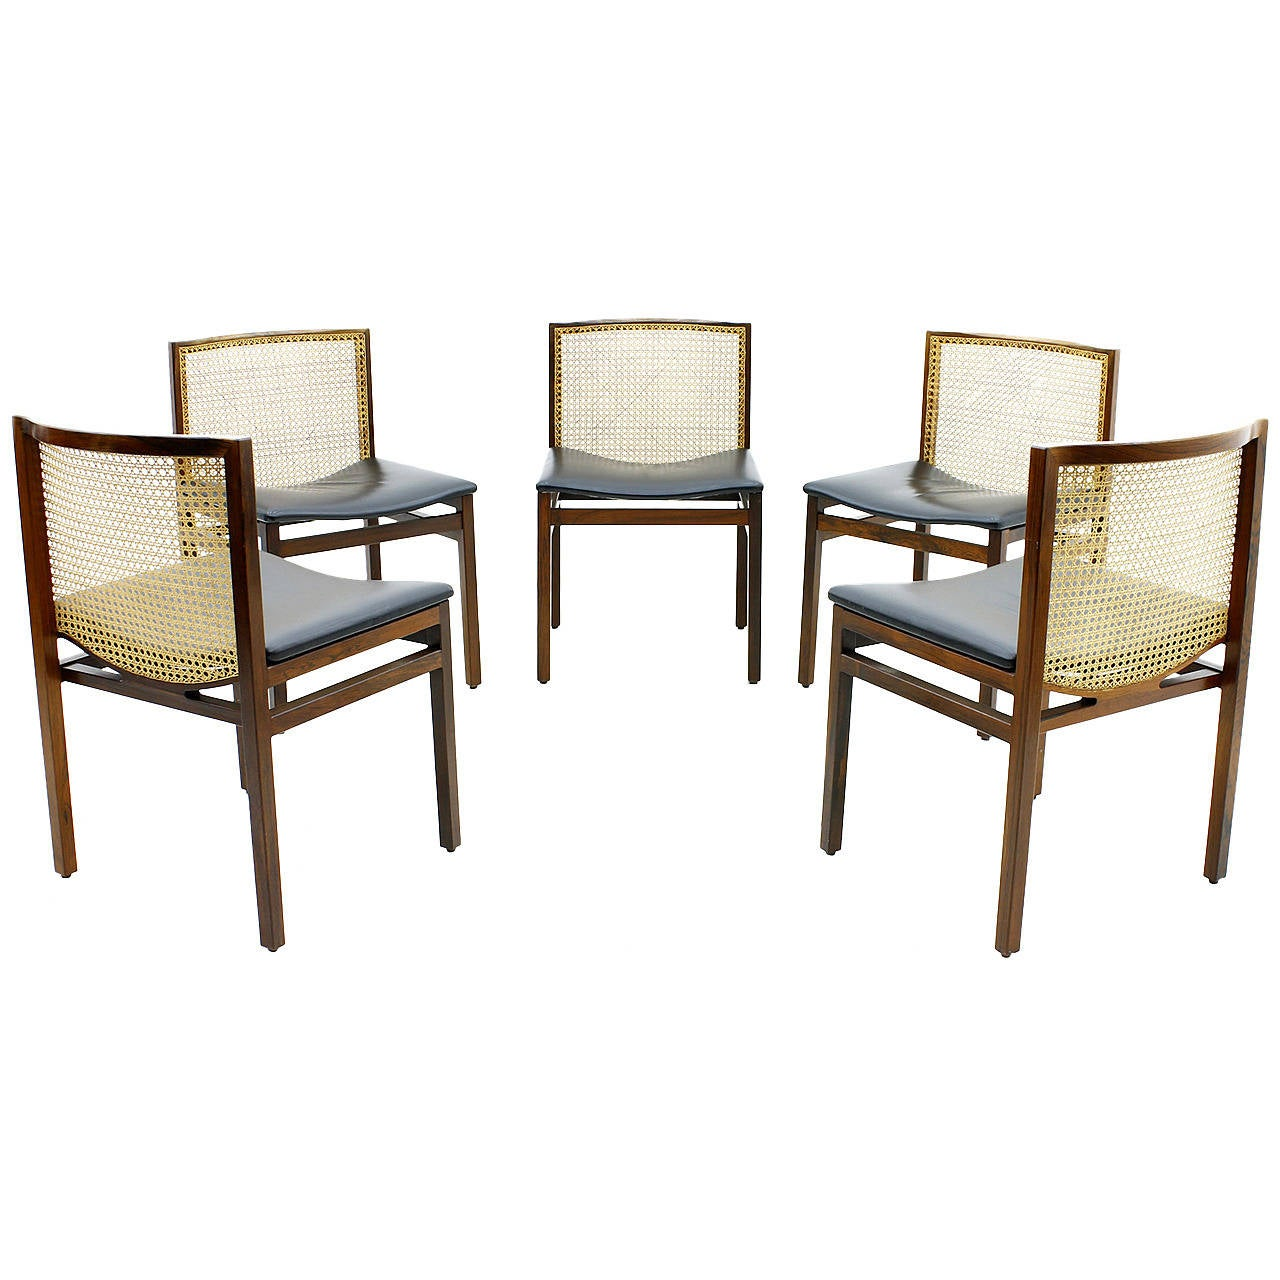 Danish Dining Chair set of five scandinavian dining chairs, rosewood, cane and leather